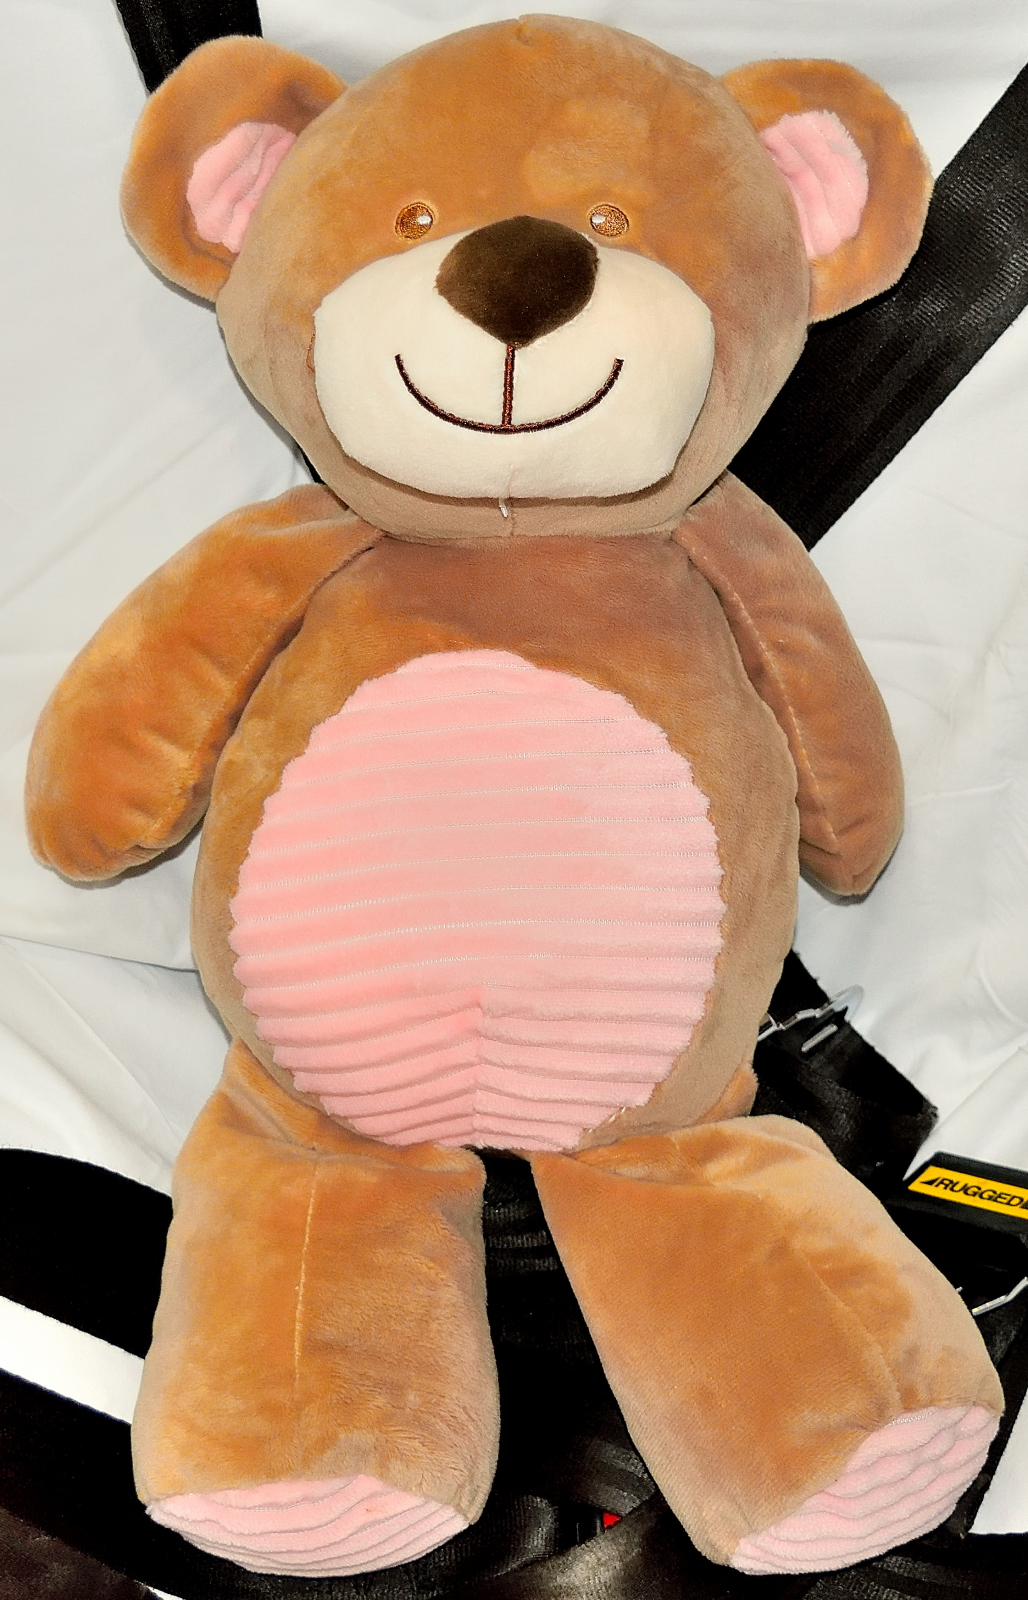 Stuffed Animals - For our pediatric patients.